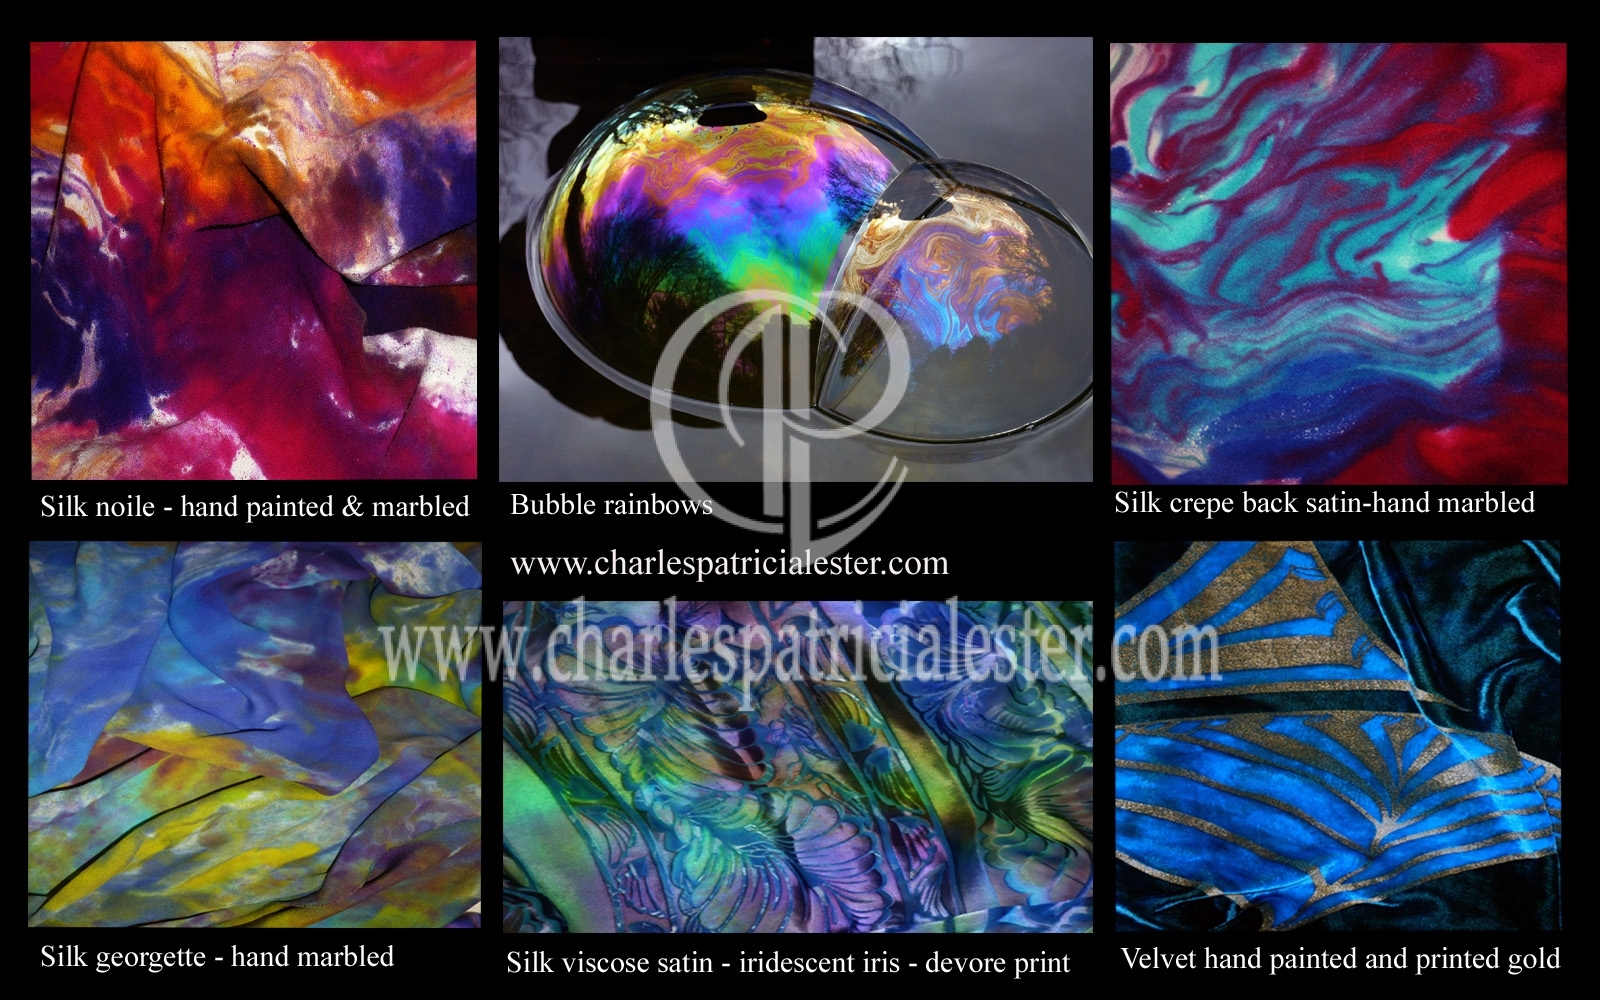 Rainbow bubble colours transposed to marbled silks